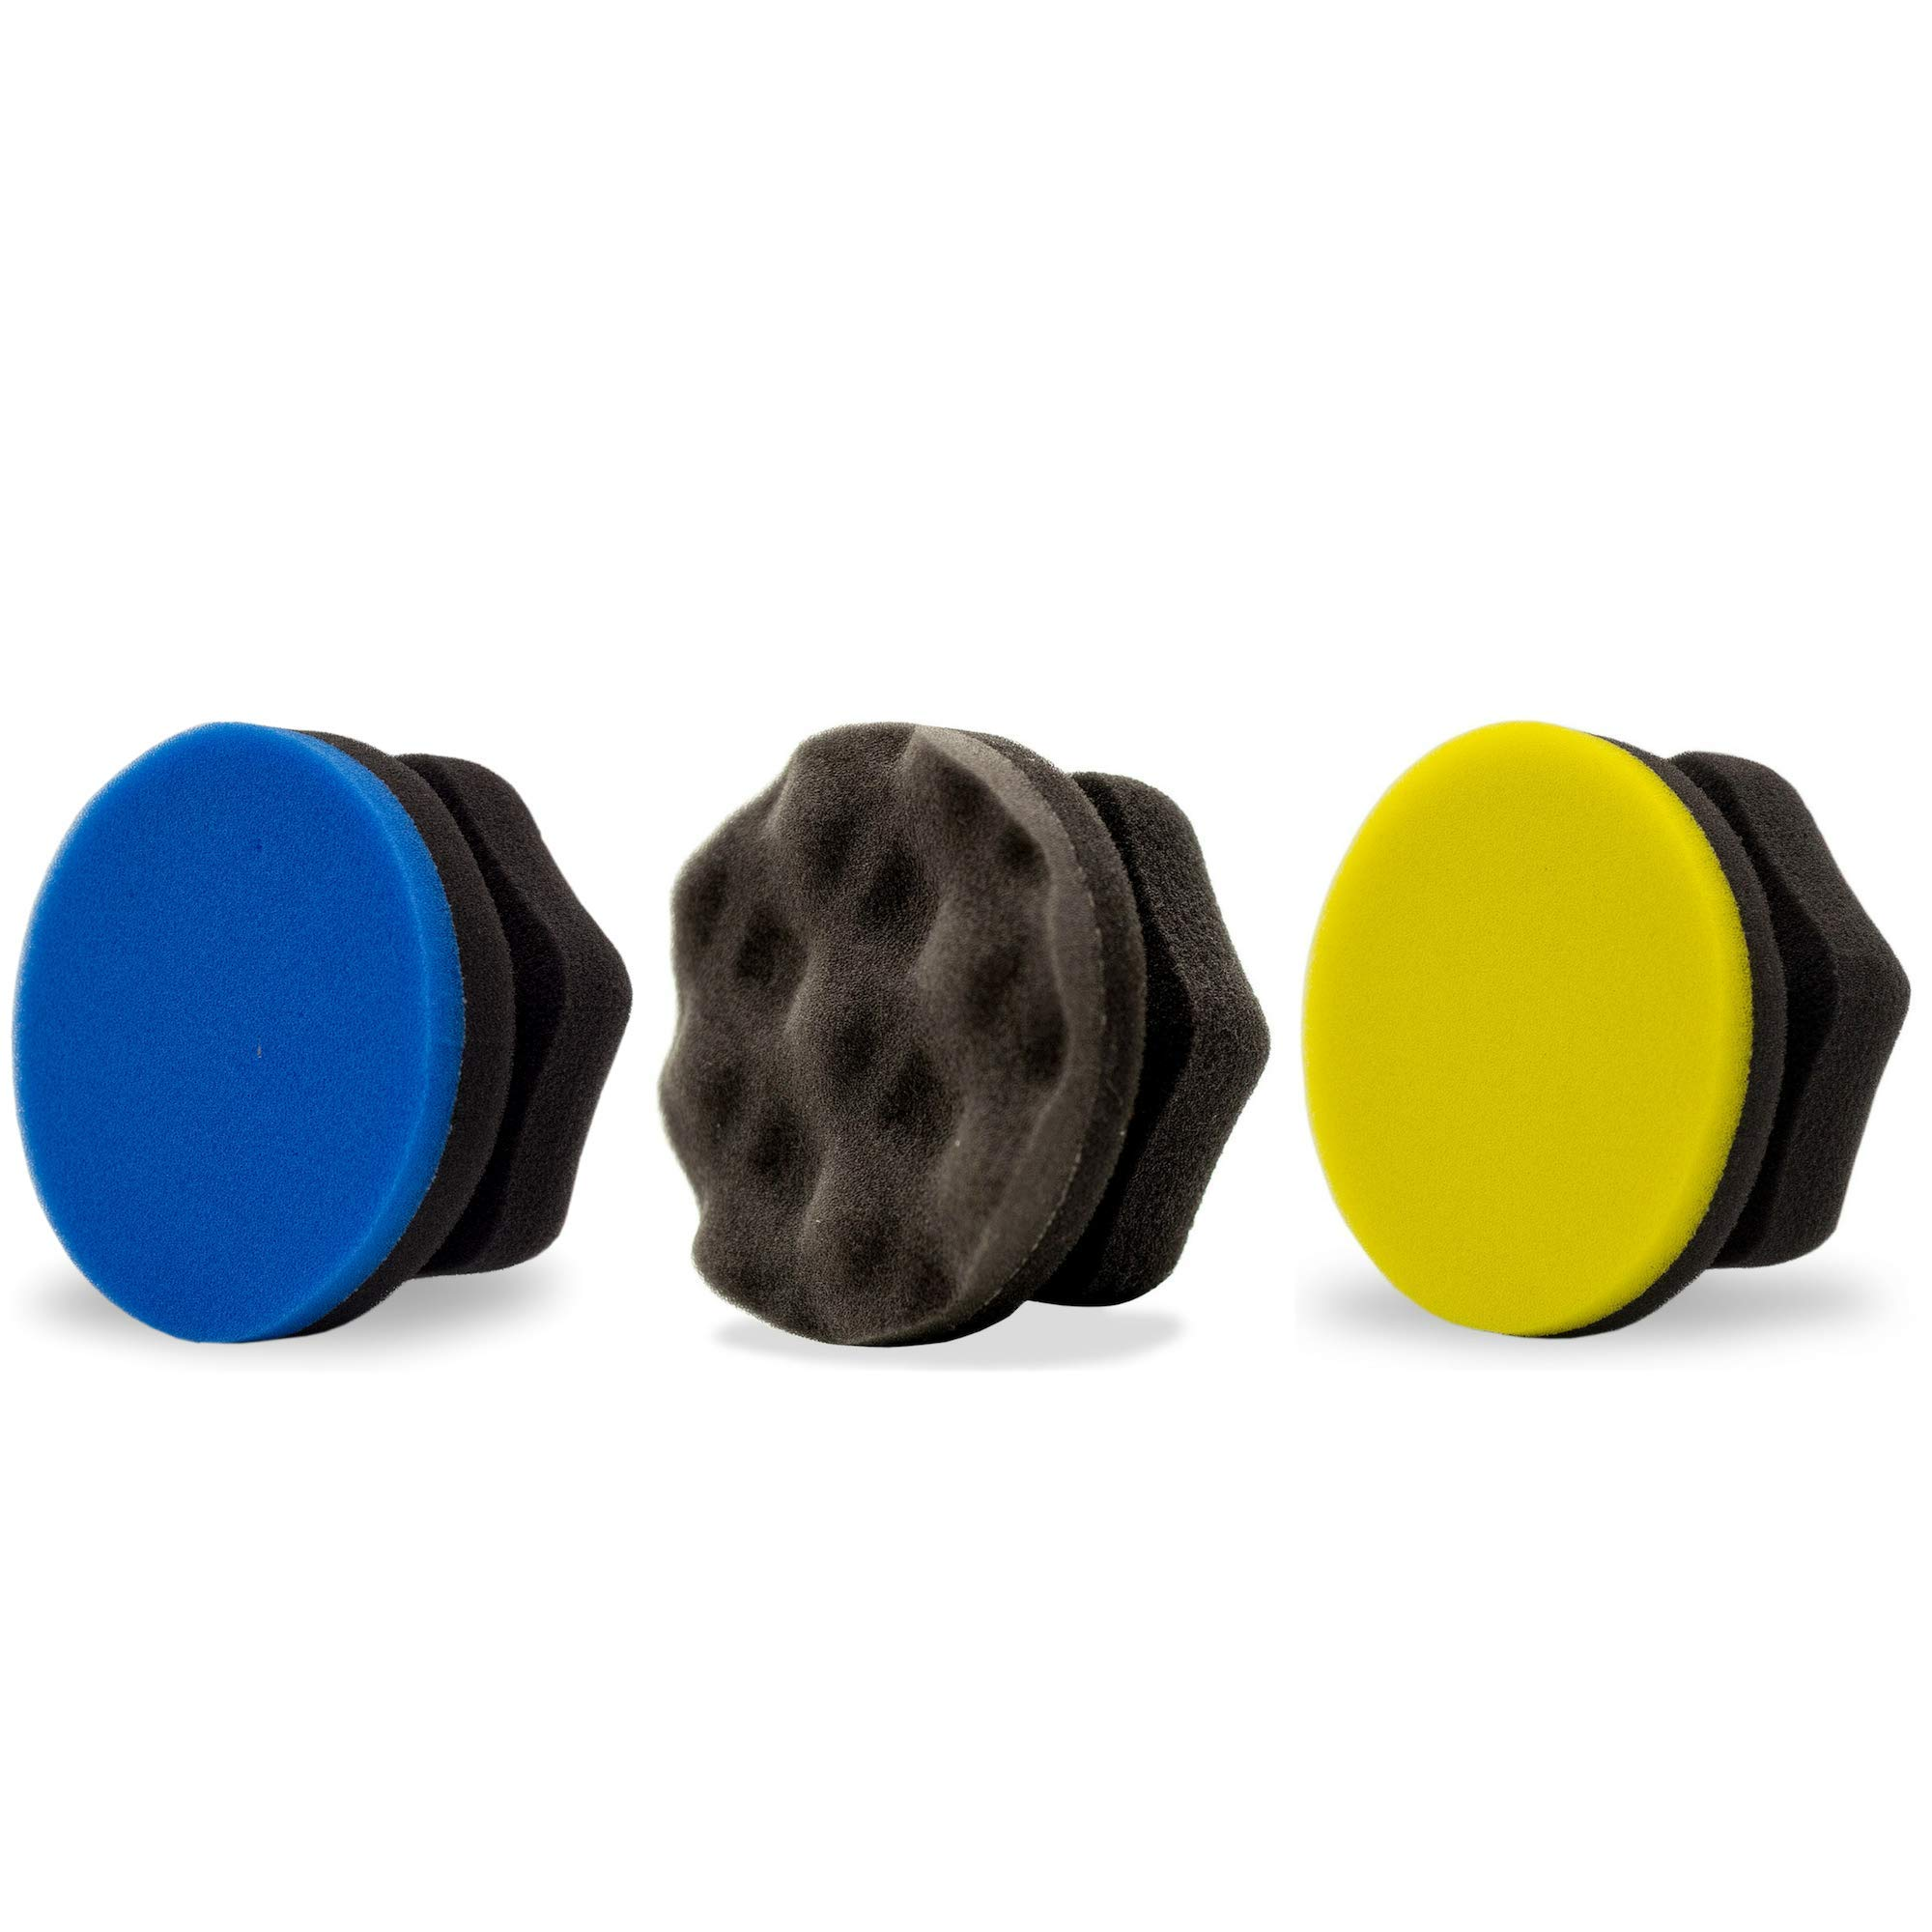 Adam's Hex Grip Applicator Combo - A Collection of All Our Hex Grip Car Detailing Applicators for Tire, Wax, Polishing, Scratch Removal